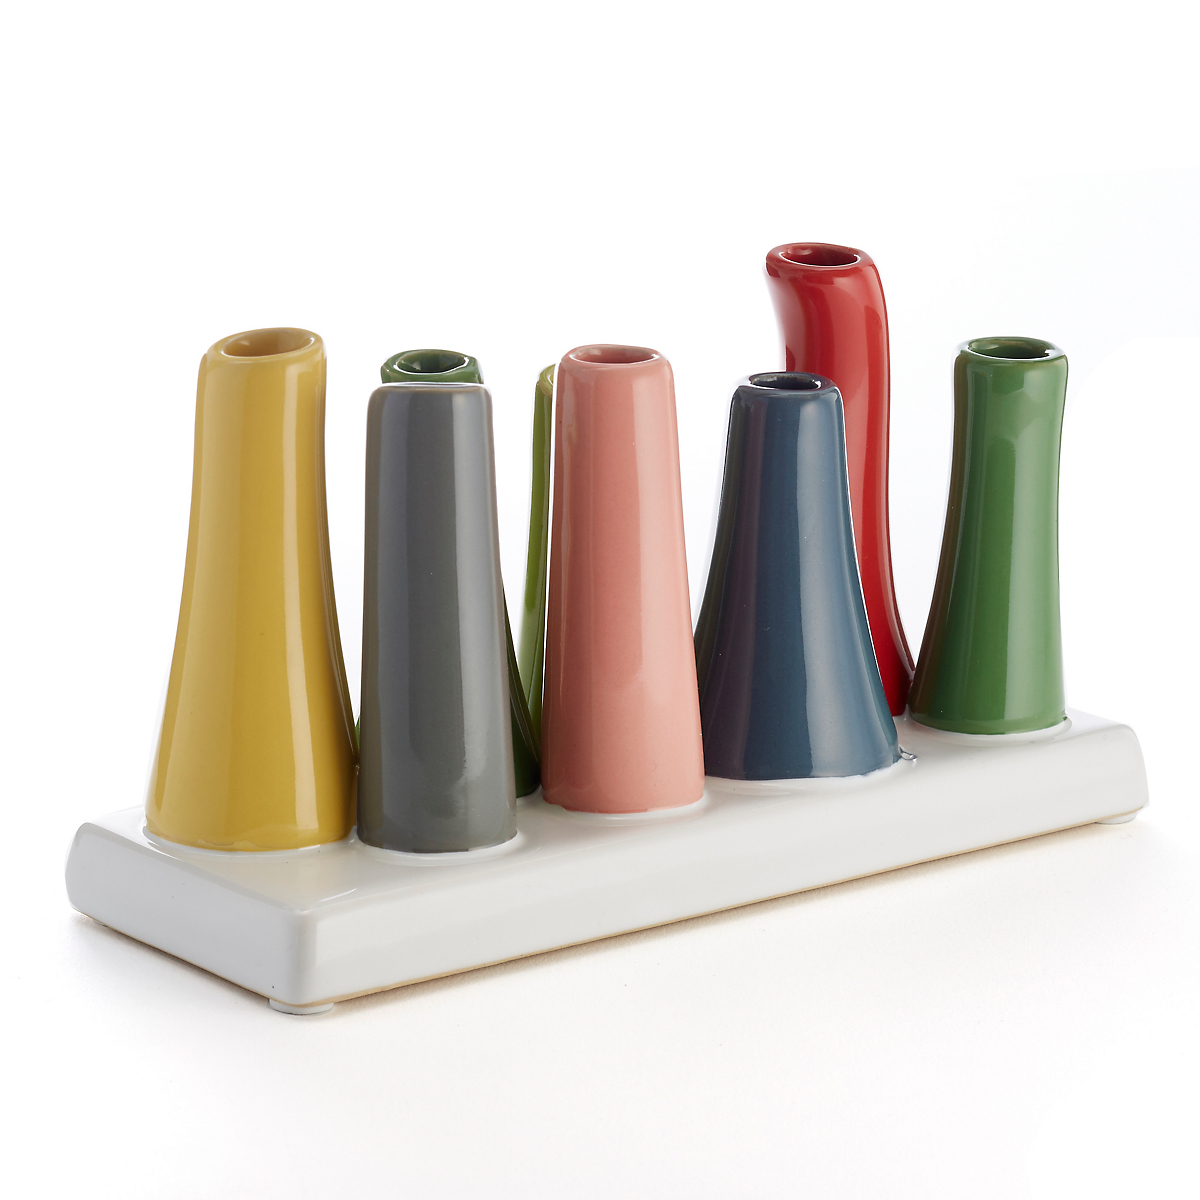 Pooly Multicolored 8-Vase Set